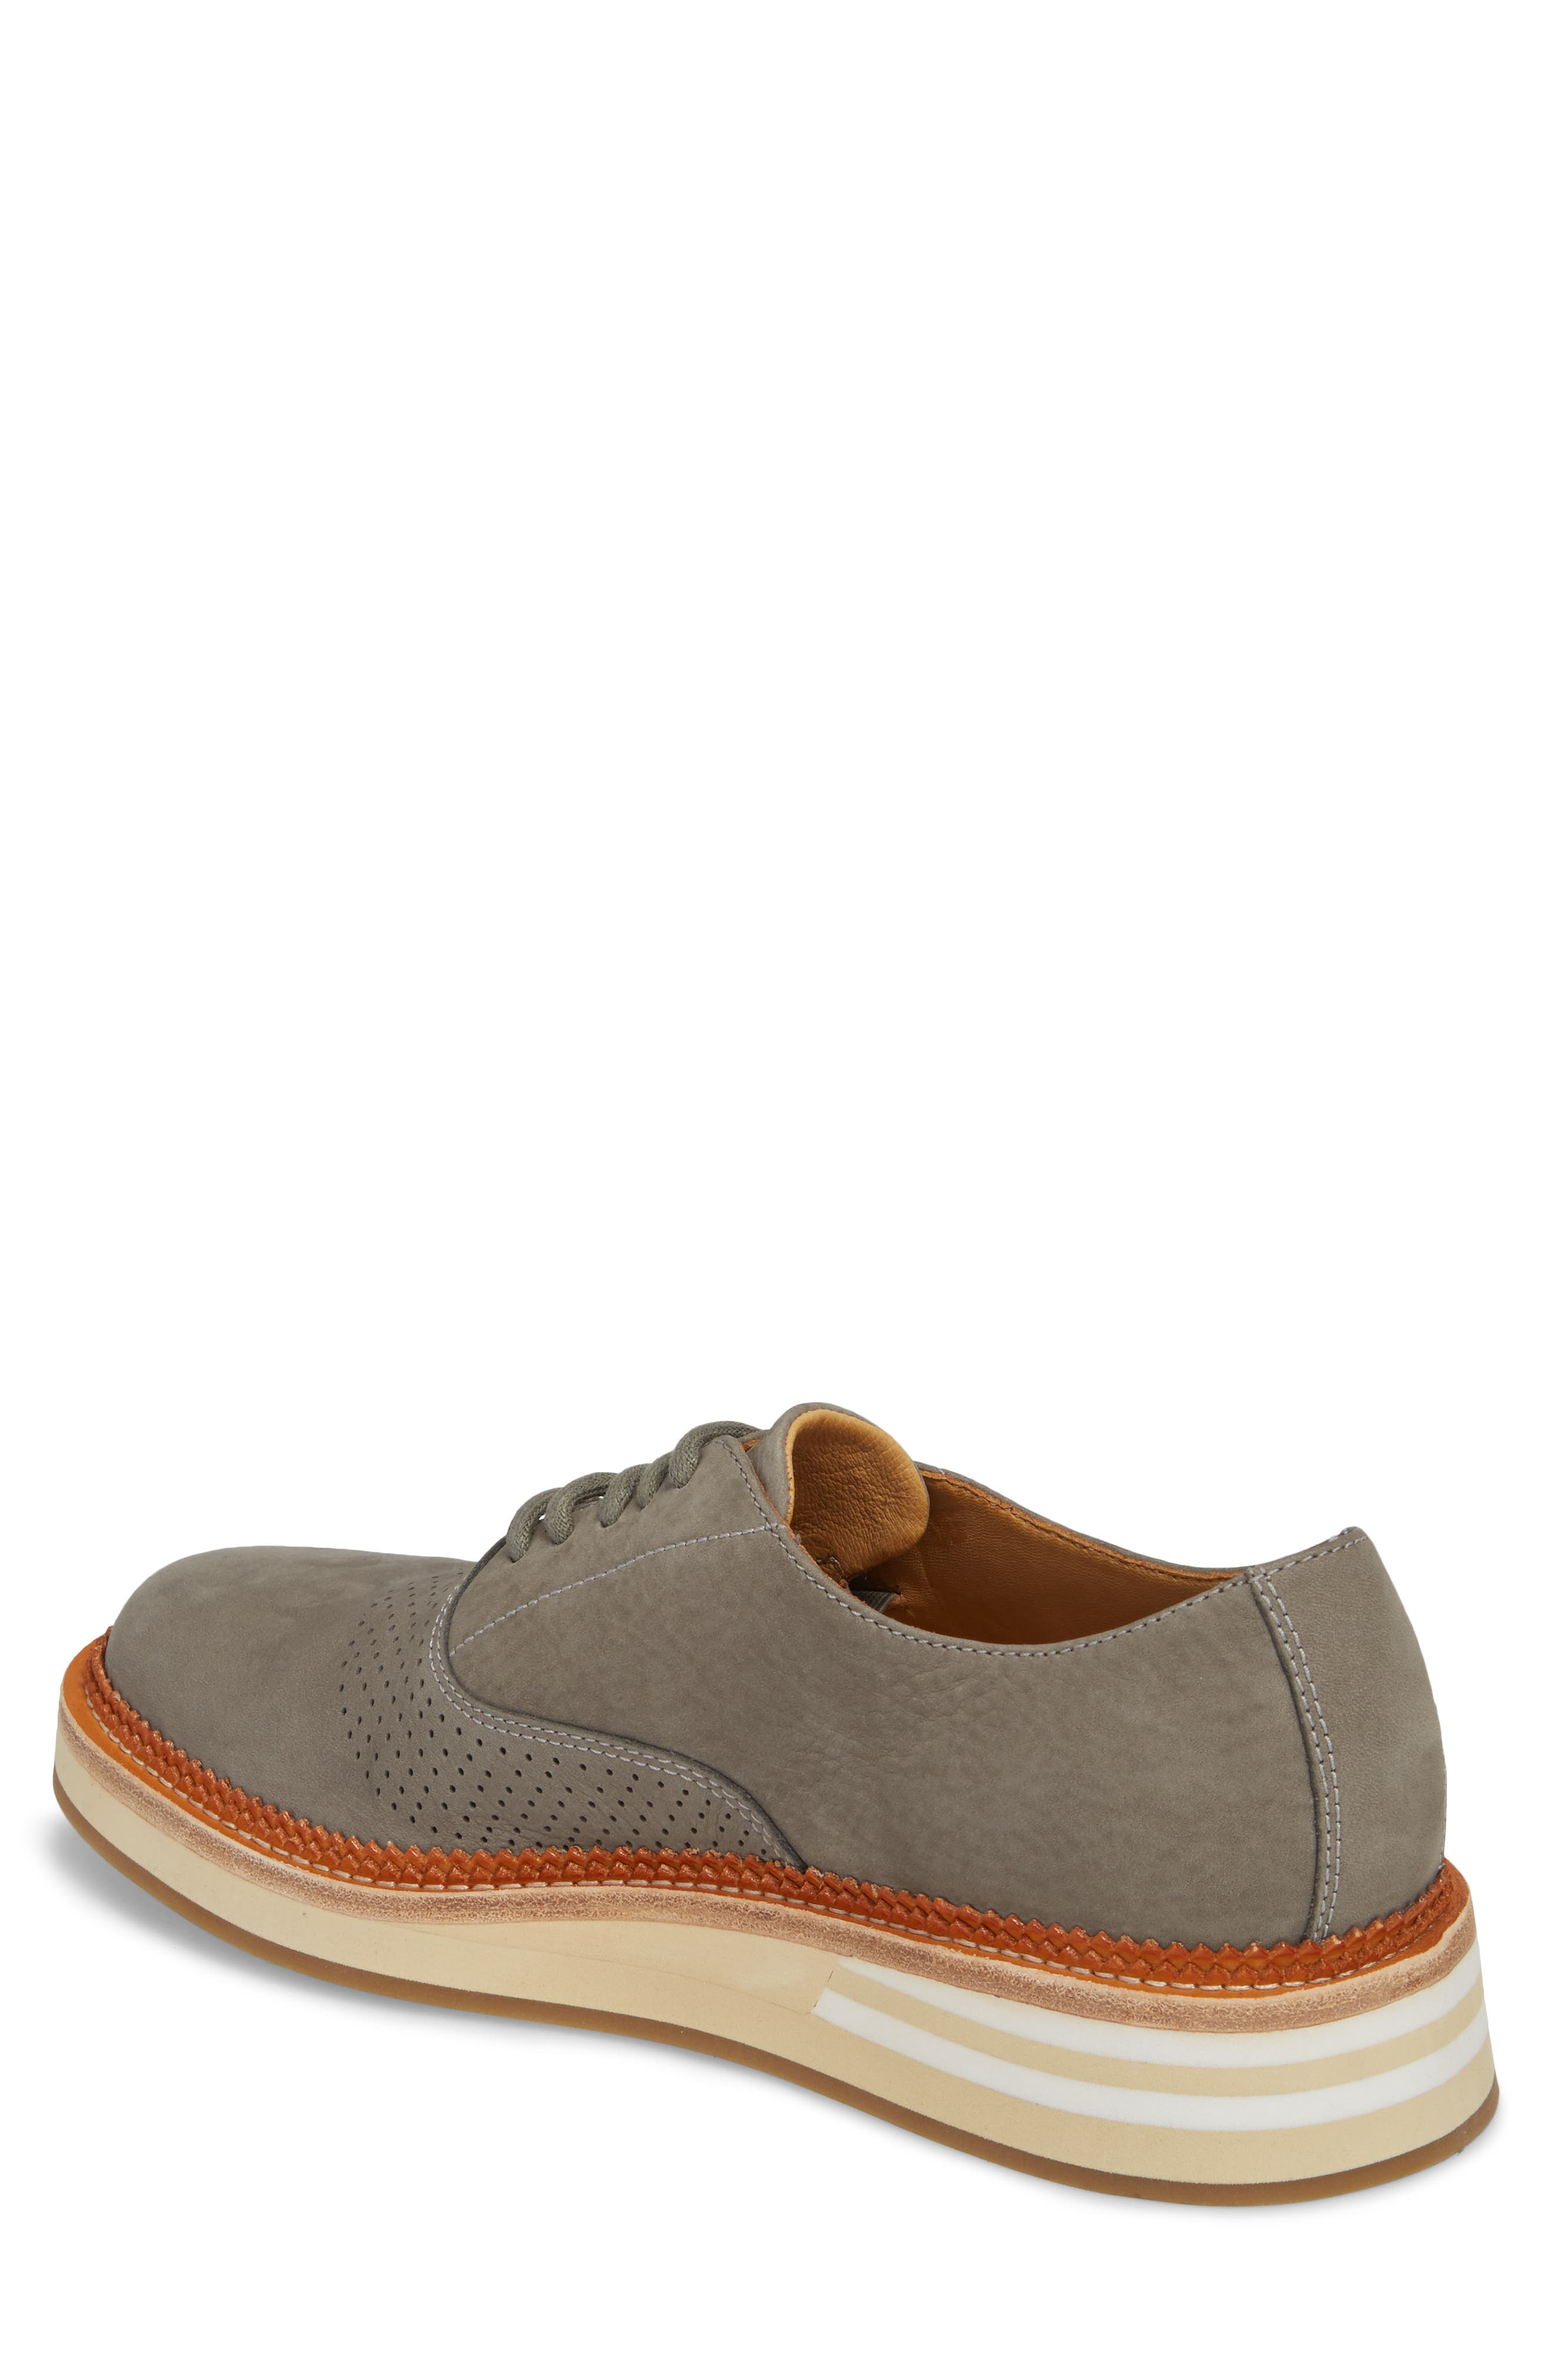 Cloud Perforated Oxford,                             Alternate thumbnail 2, color,                             GREY